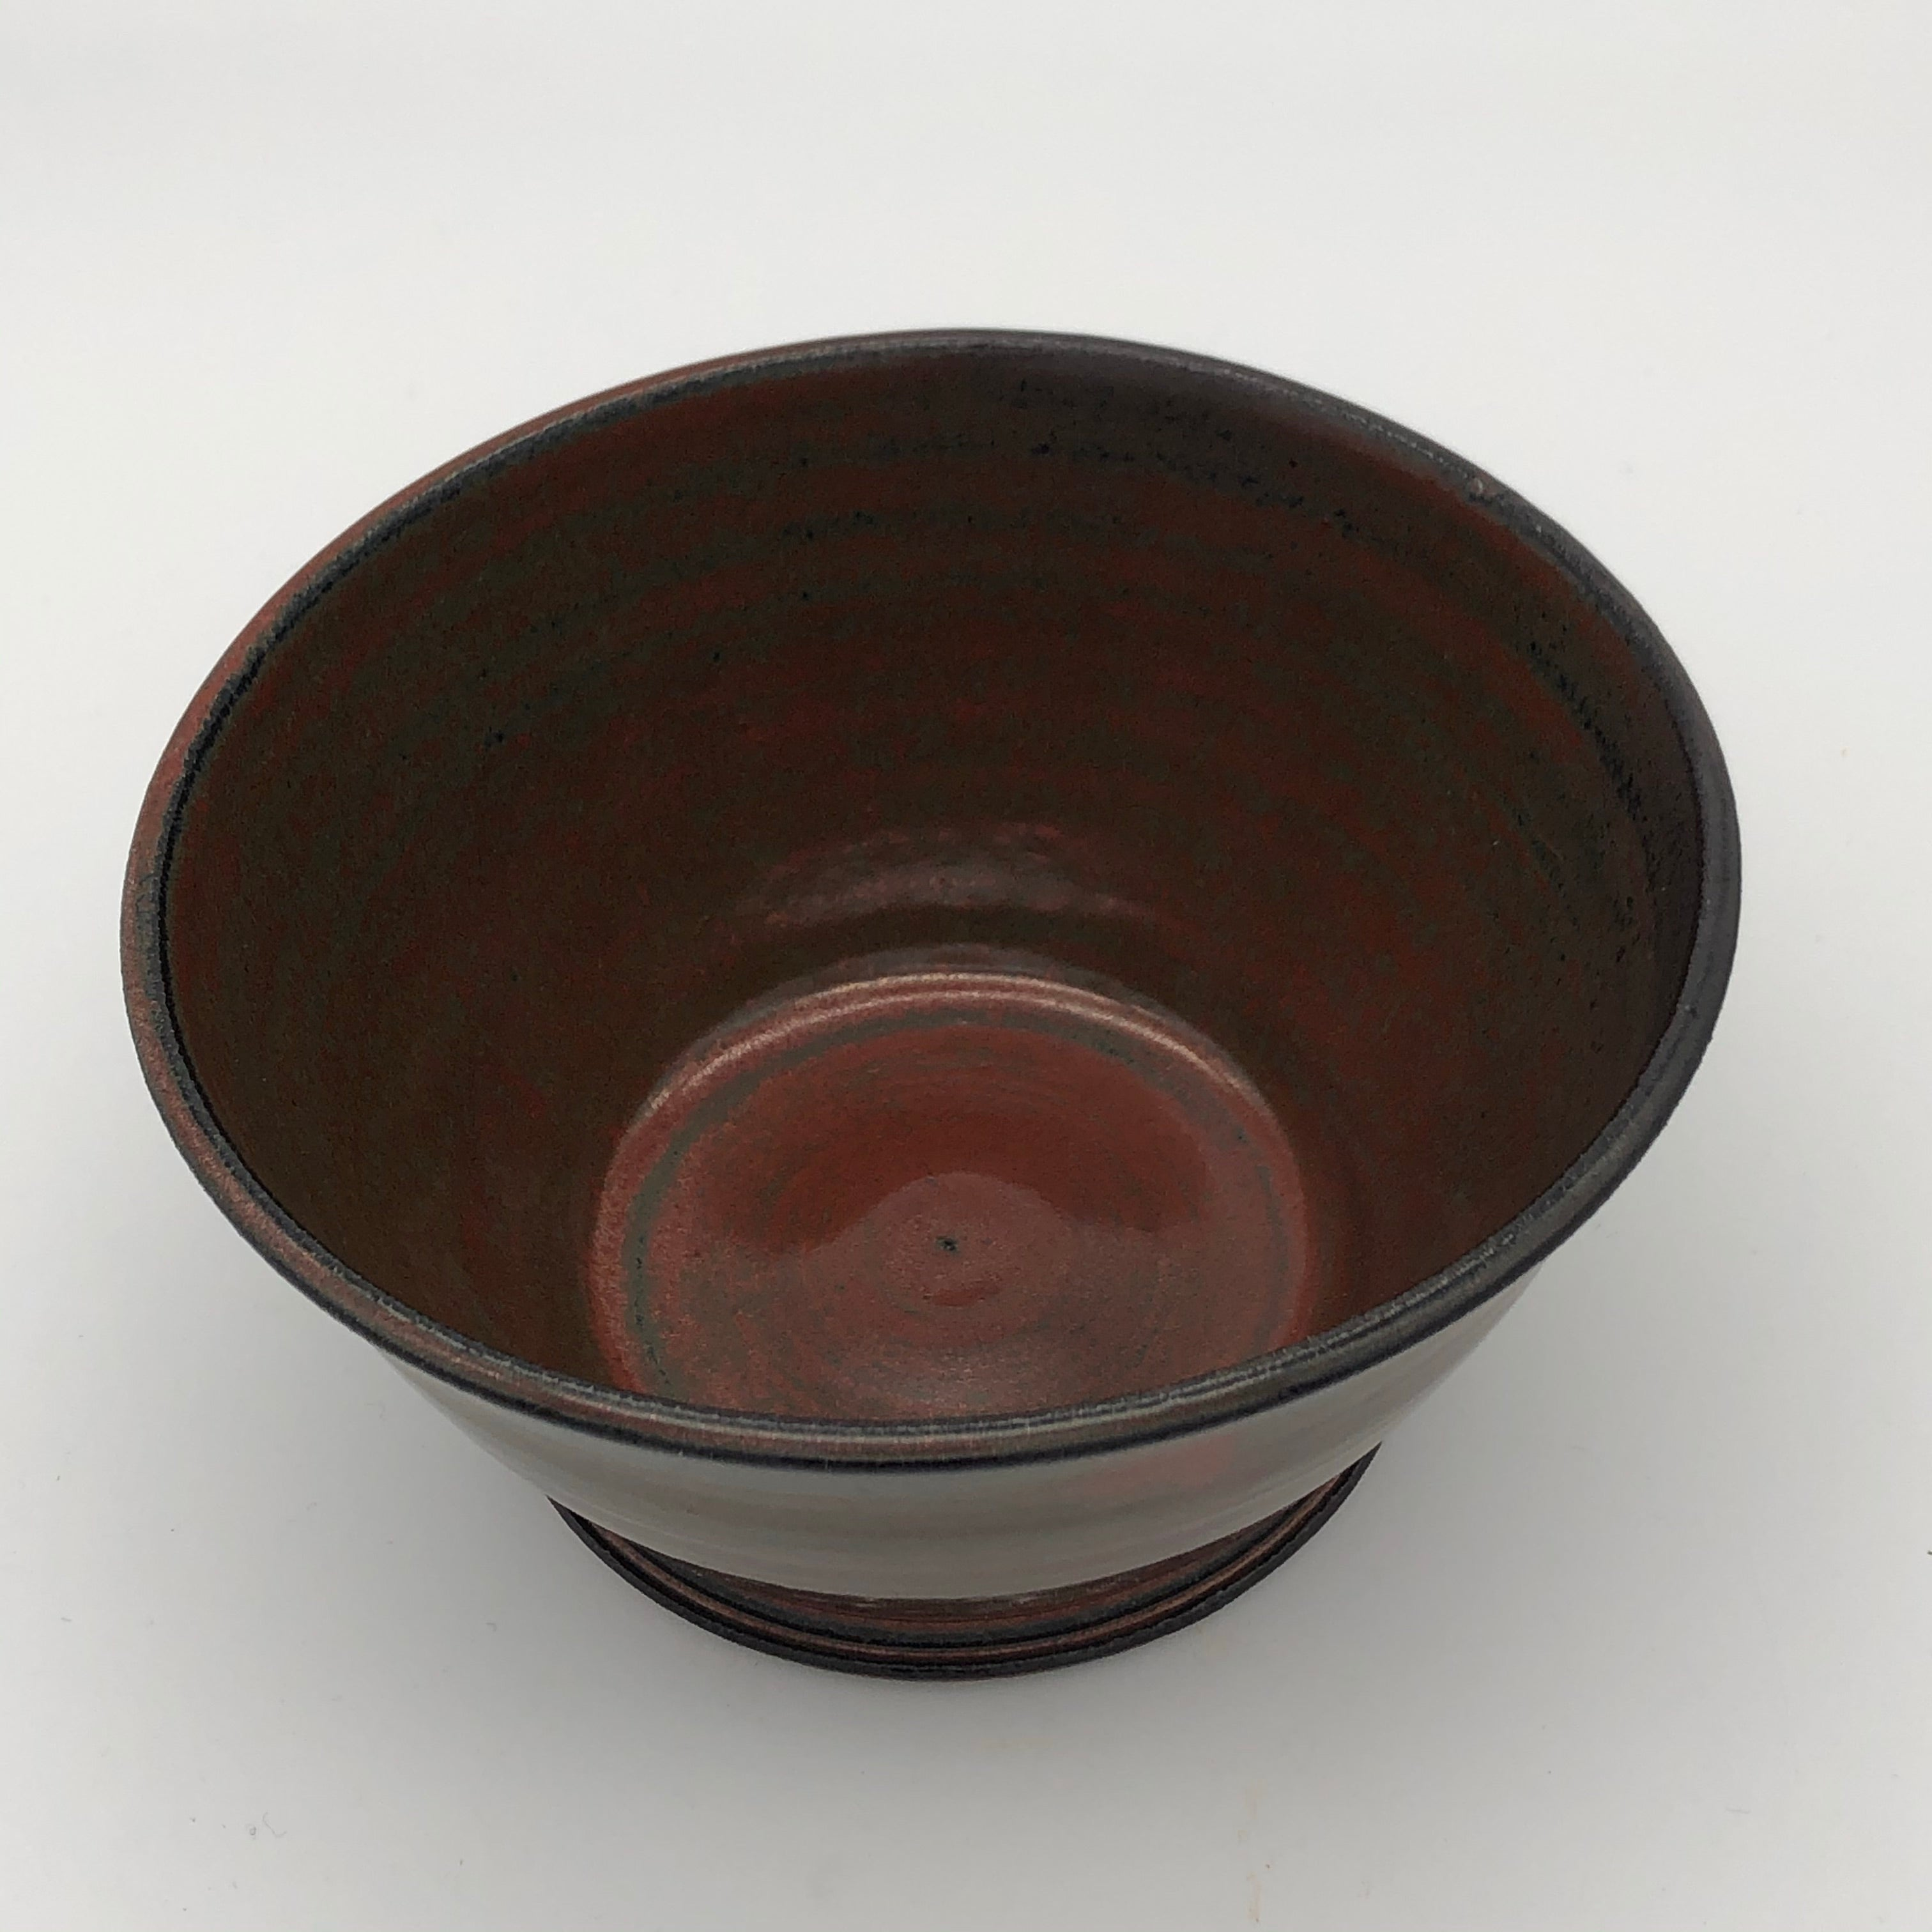 2.5 cup bowl in Ancient Jasper